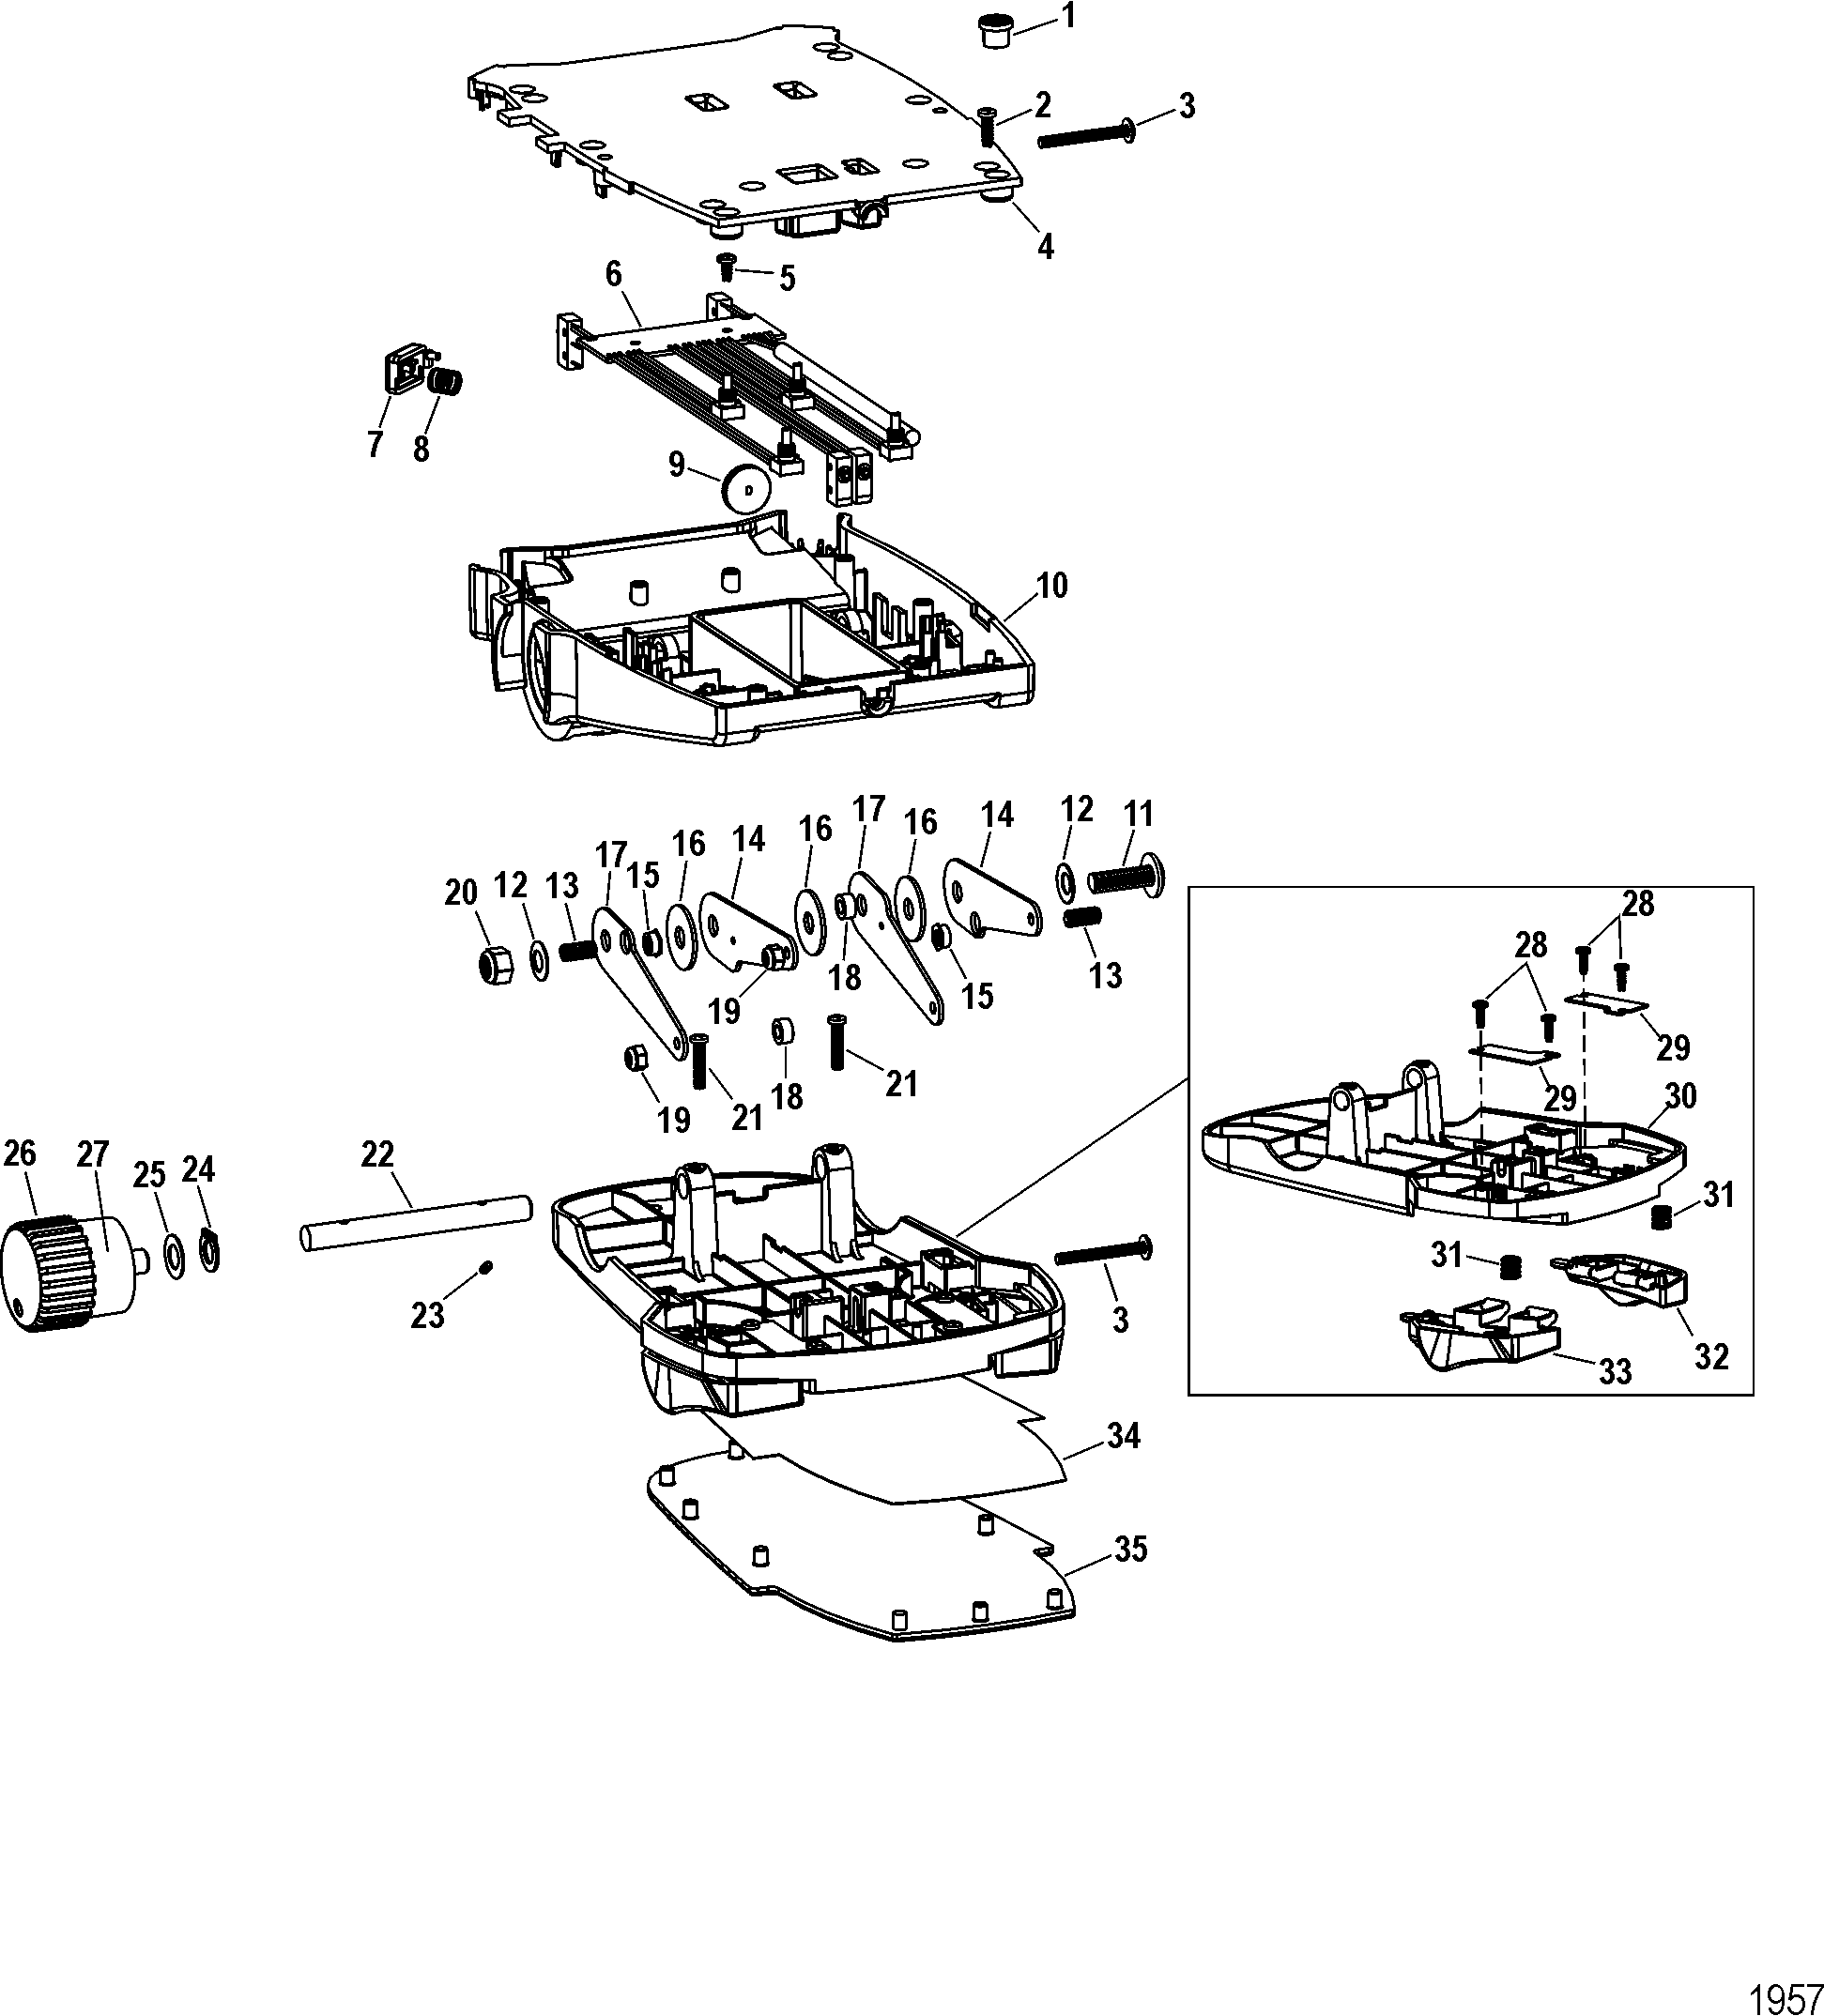 1957 foot pedal assembly m0099101 for motorguide motorguide digital motorguide xi5 wiring diagram at fashall.co